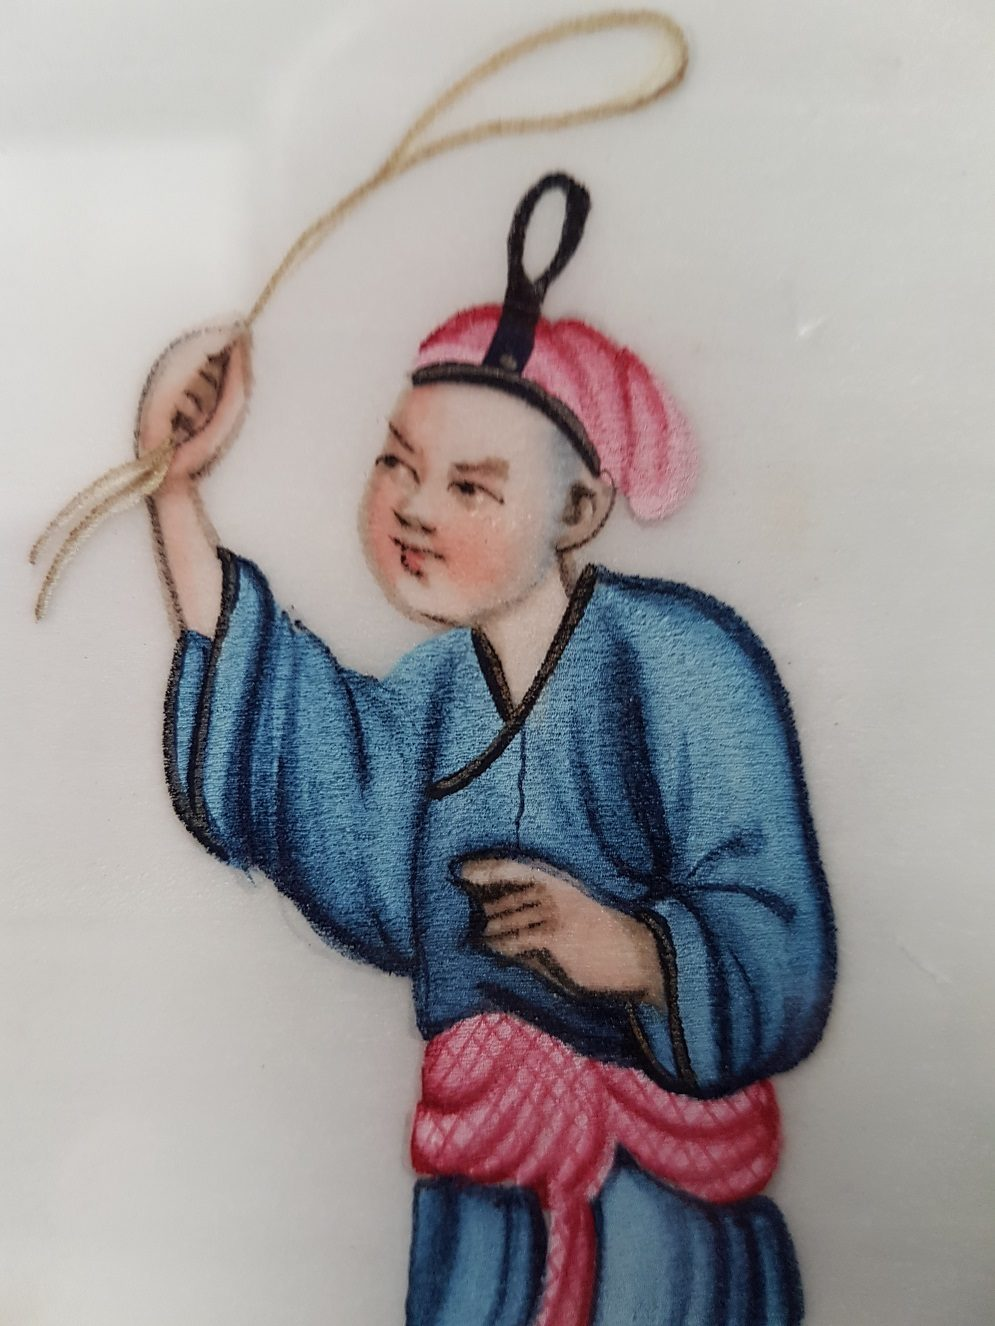 Pit paper Painting of a Chinese Man Holding a Rope